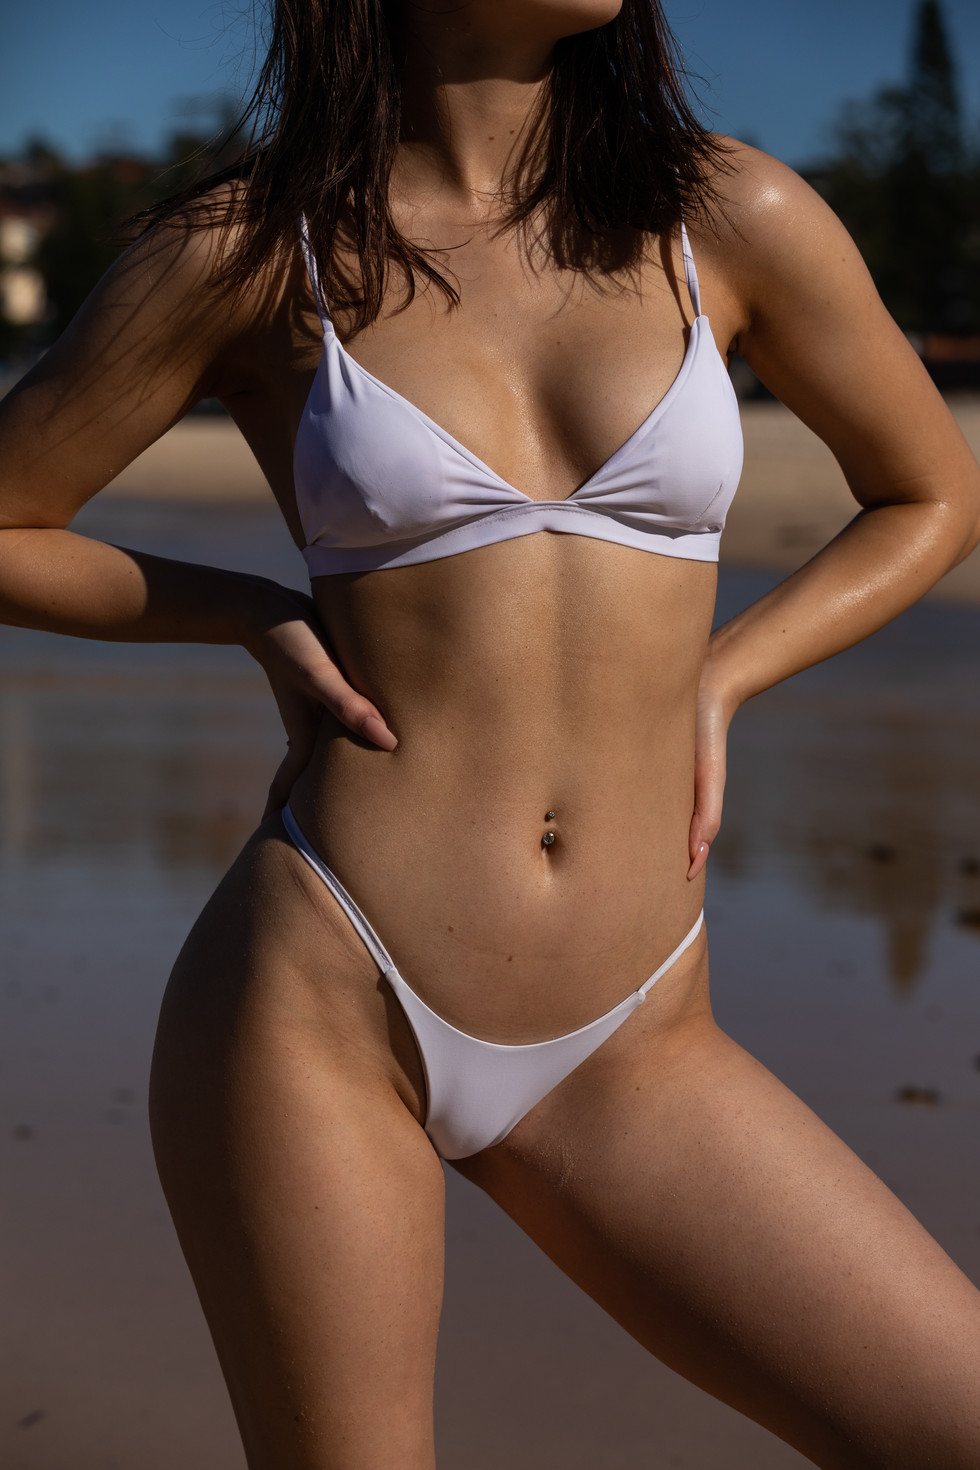 Bella_by_CoogeePhotography-474573.jpg